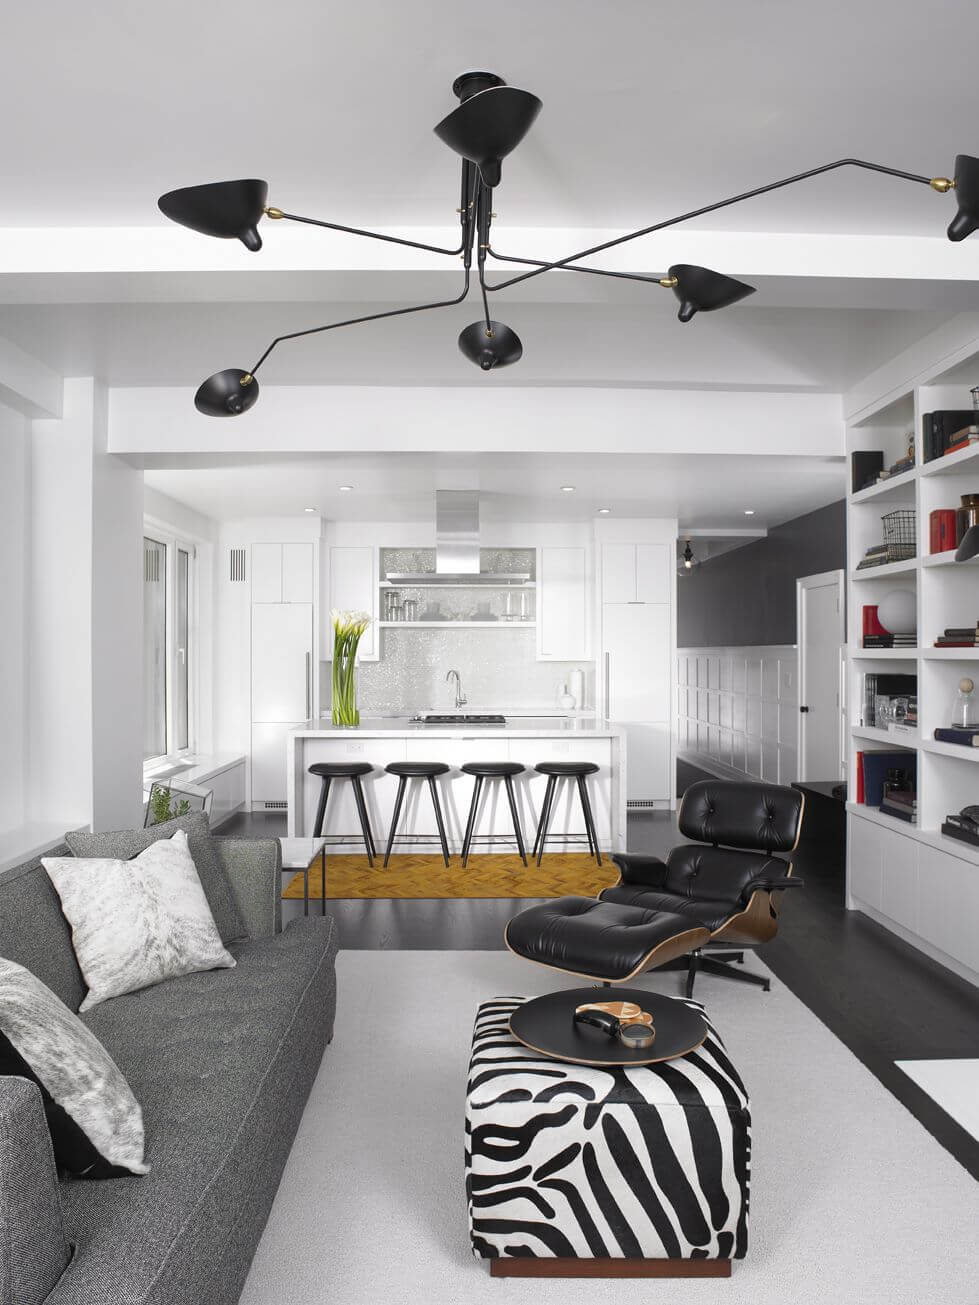 This Small Apartment Living Room In An Open Concept Living Space Features A  Small Zebra Print